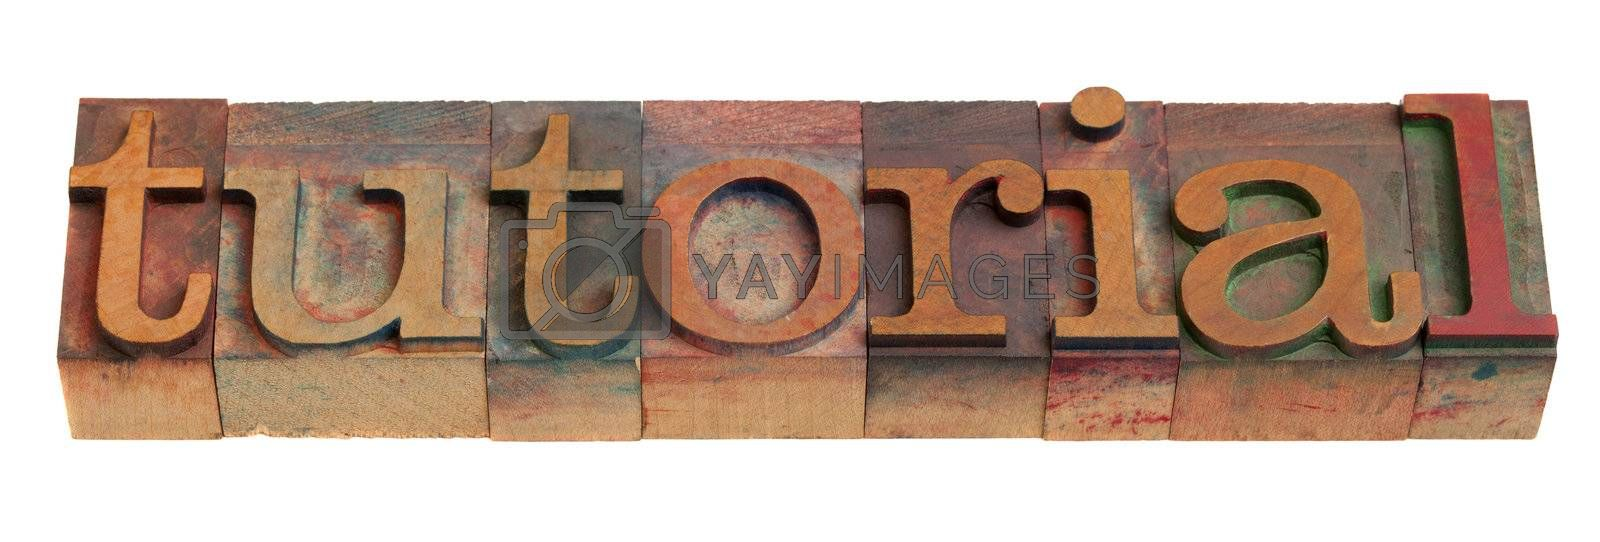 tutorial - word in vintage wooden letterpress printing blocks isolated on white